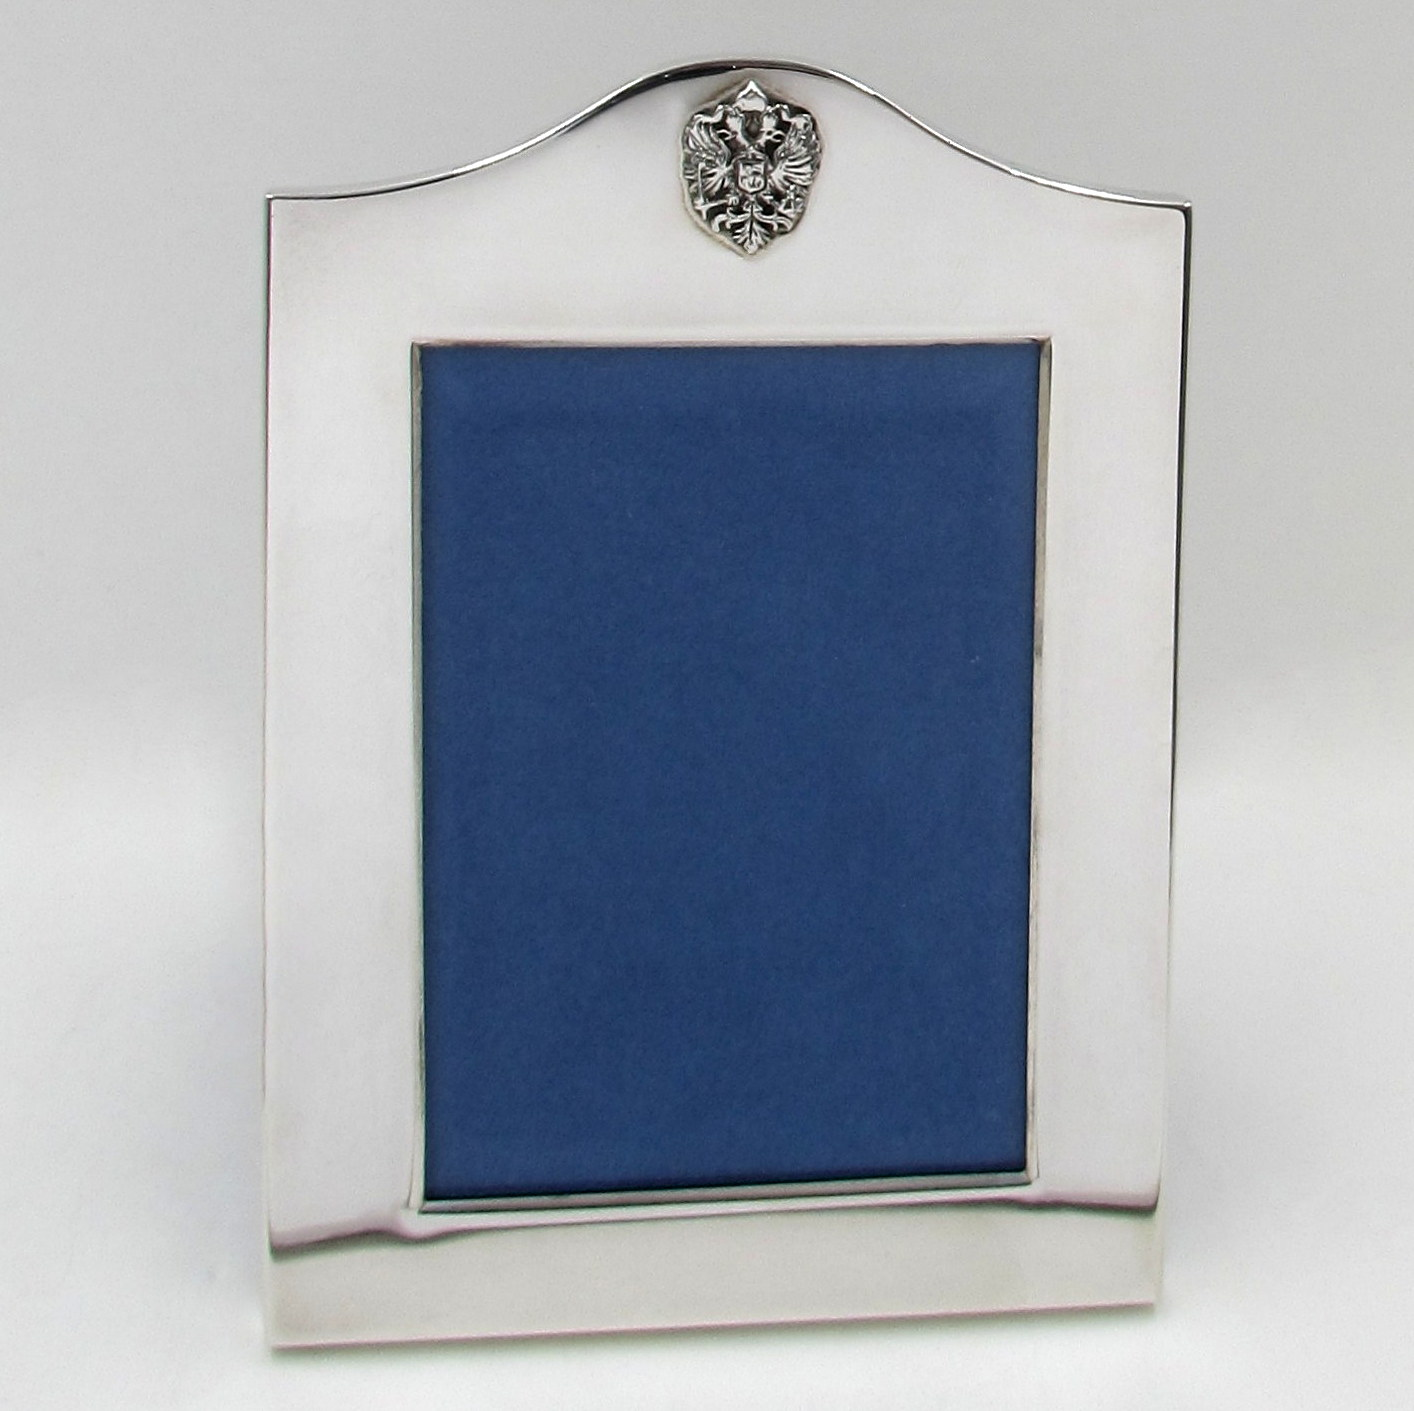 Faberge\' Sterling Silver Picture Frame with Romanov Eagle 3 x 4.5 ...